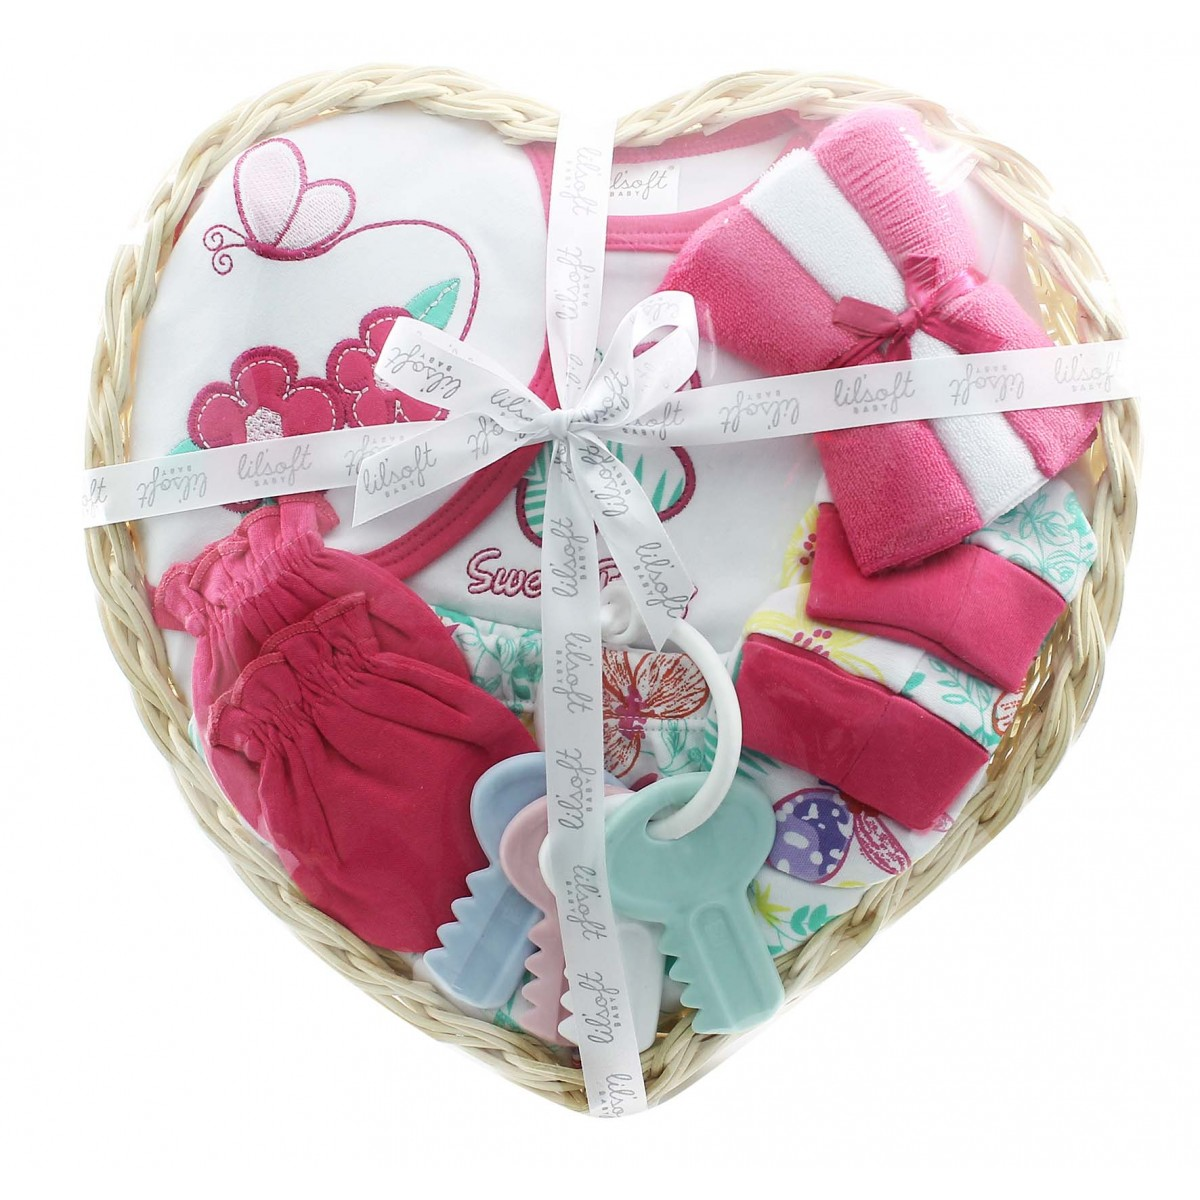 Baby Gift Pack : Pcs baby gift set for lilsoft